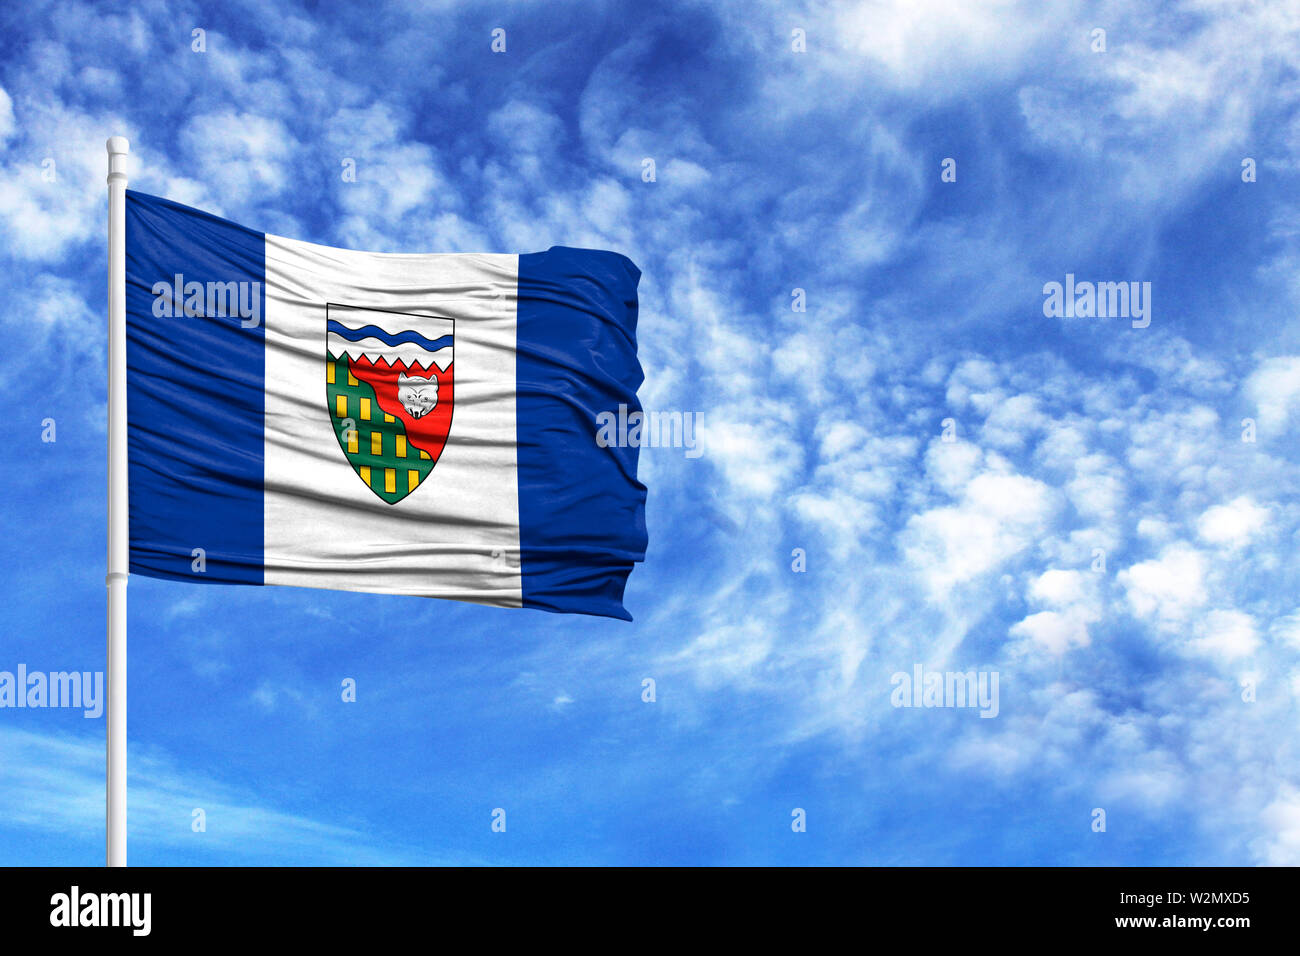 National flag of Northwest Territories on a flagpole in front of blue sky - Stock Image